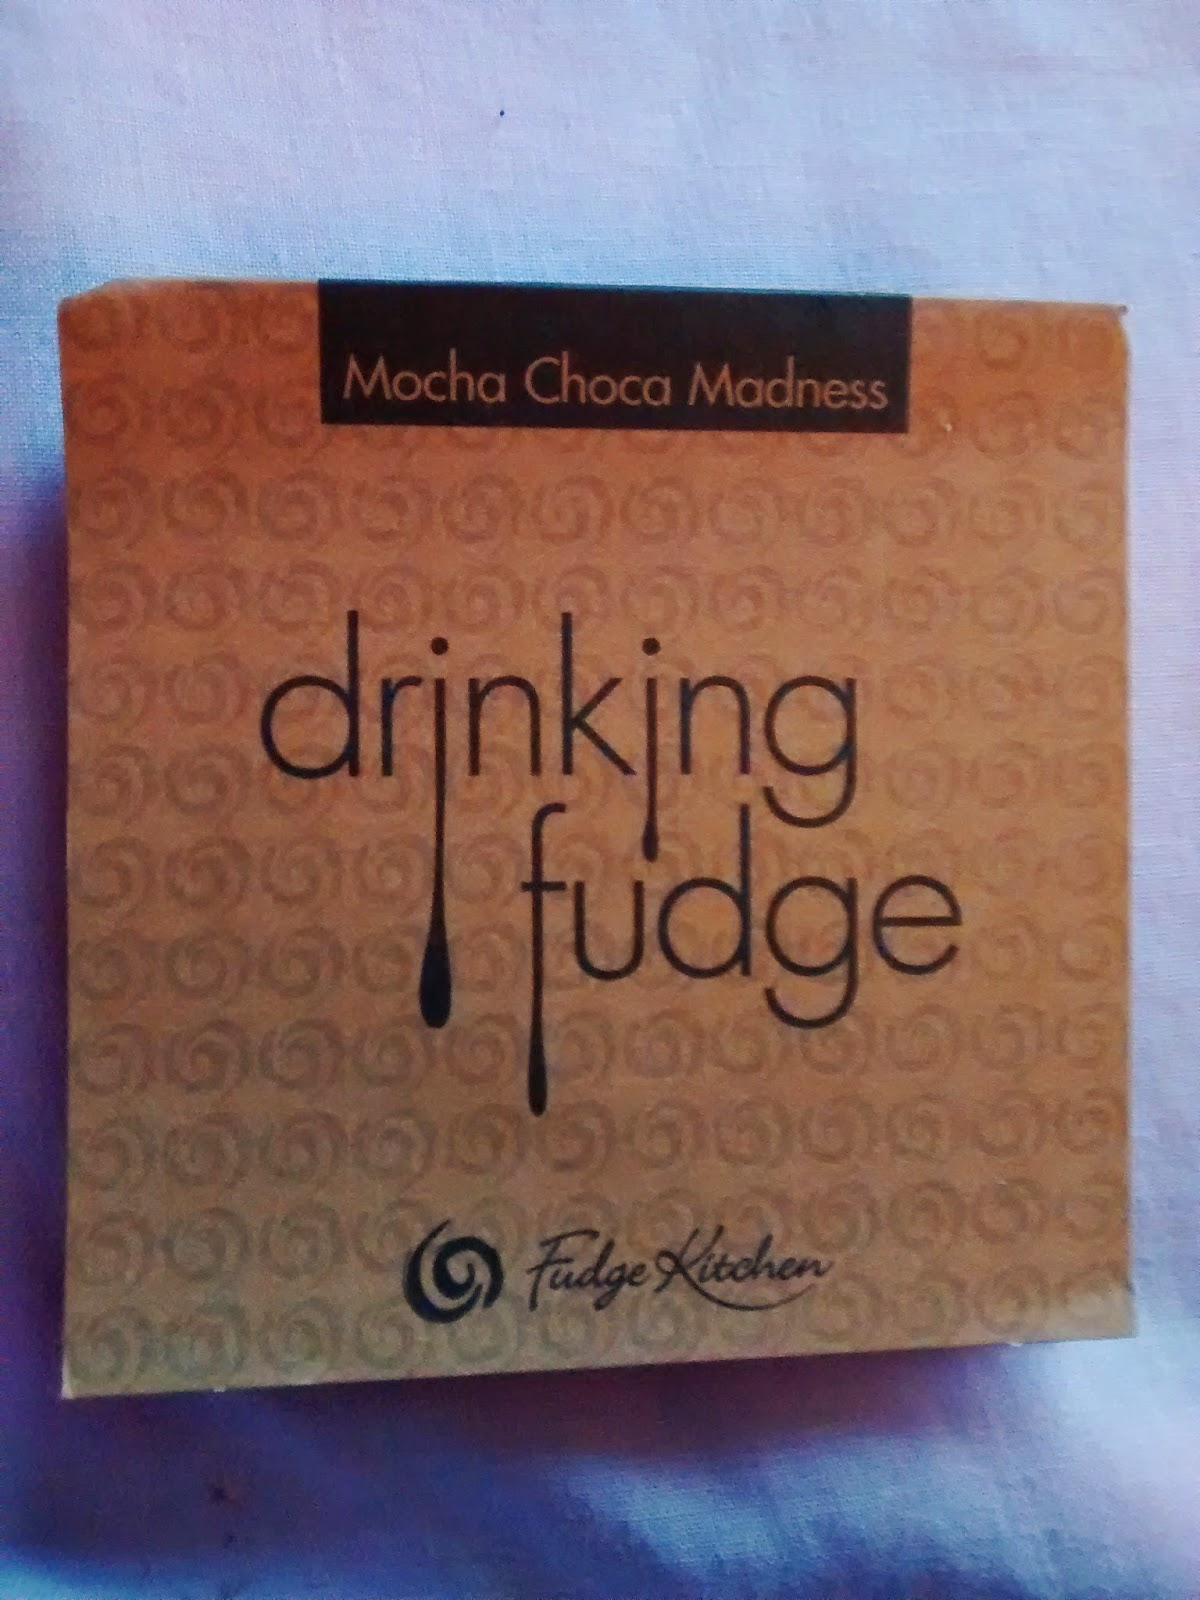 Fudge Kitchen Drinking Fudge Selection